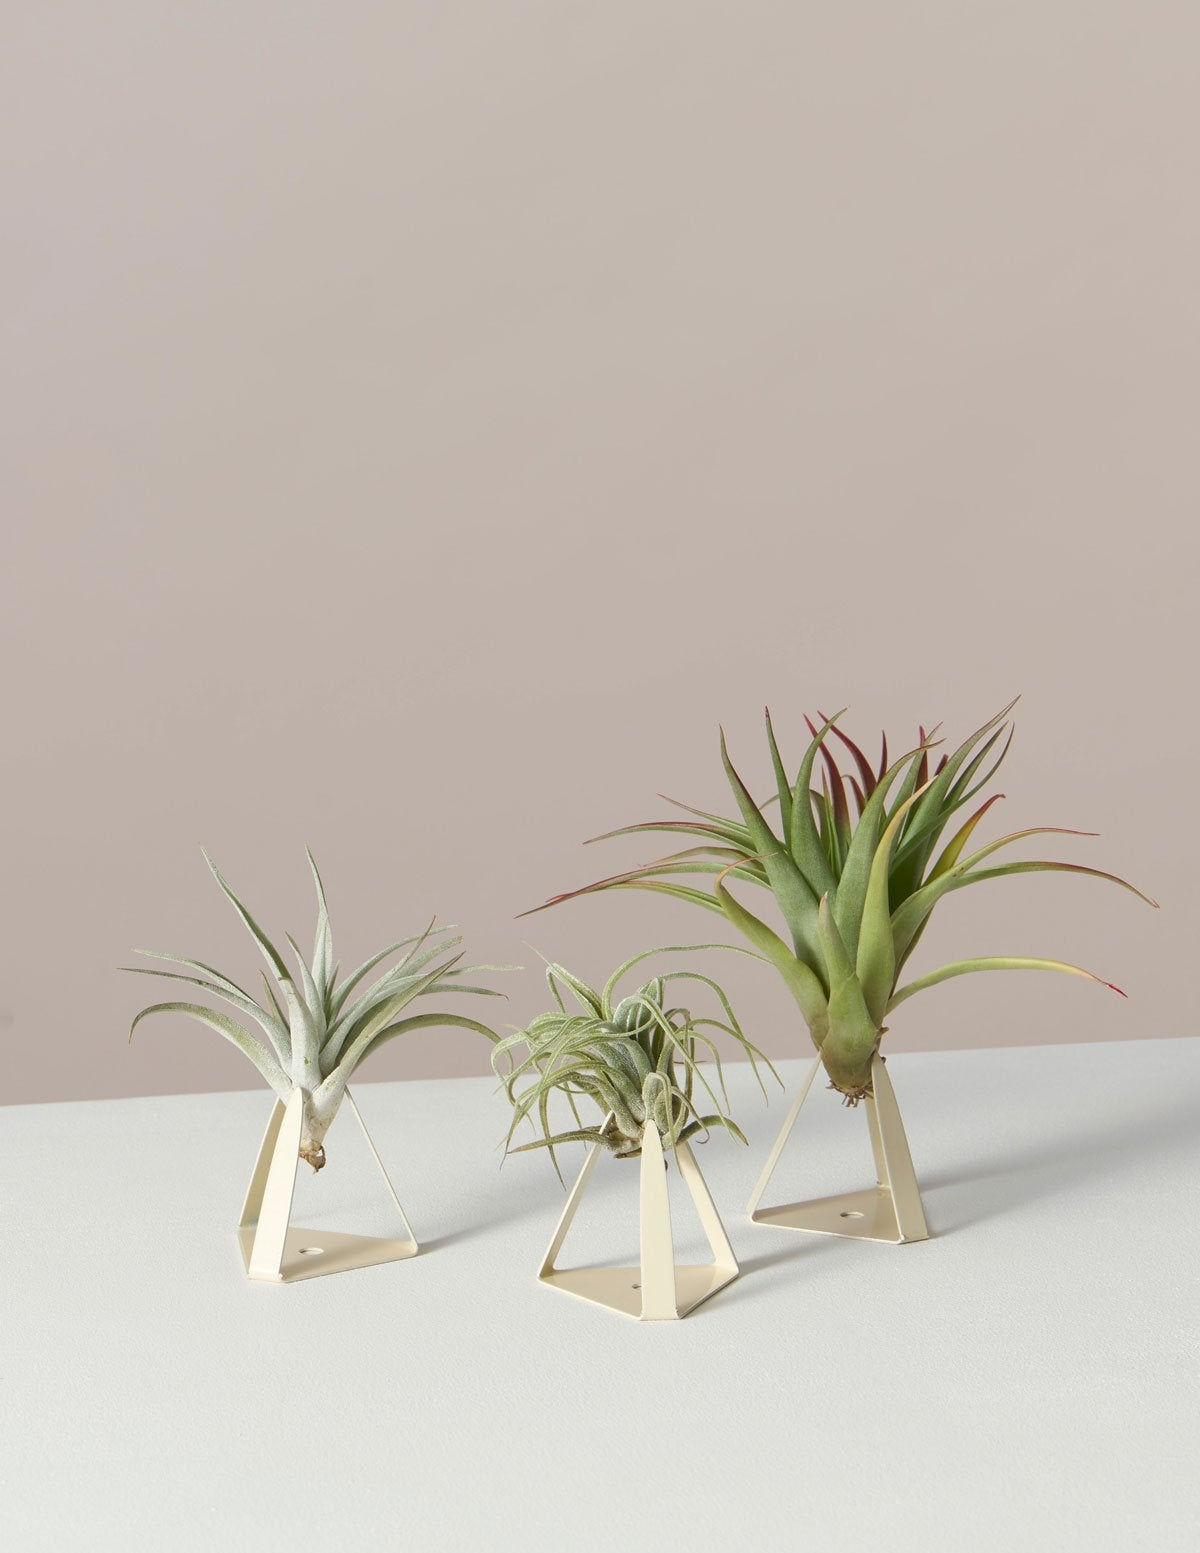 When It Comes to Easy Upkeep Greenery, Air Plants Win